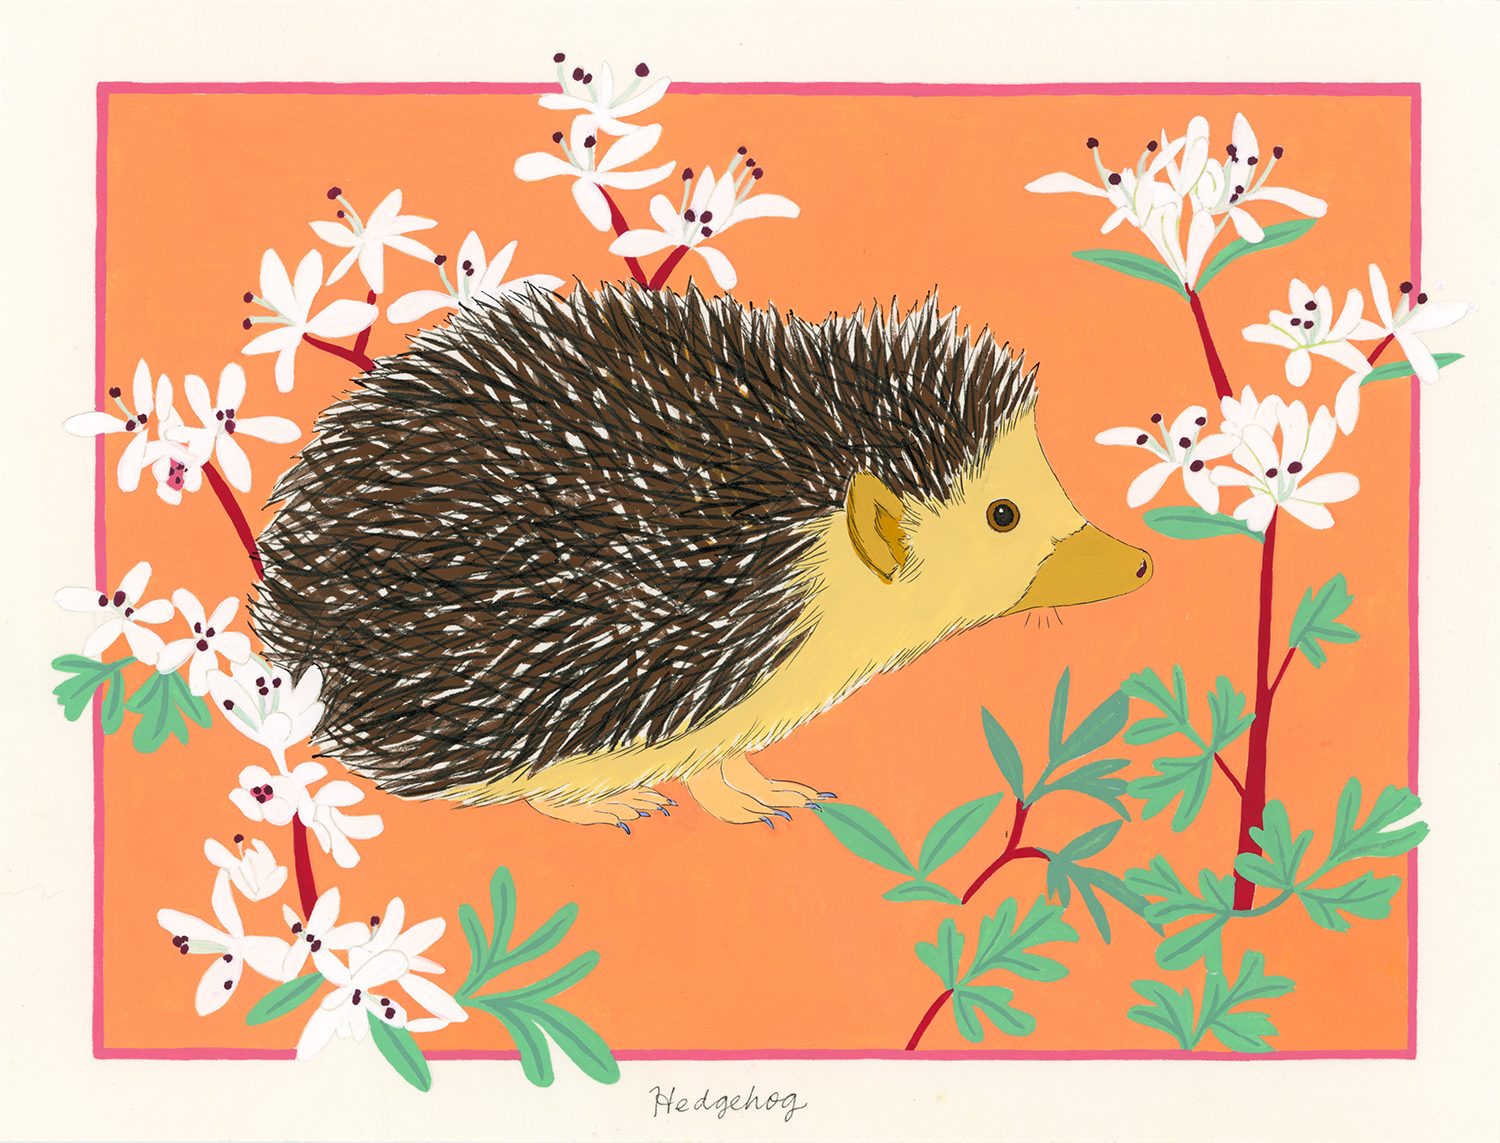 Hedgehog (for the one named Tank)